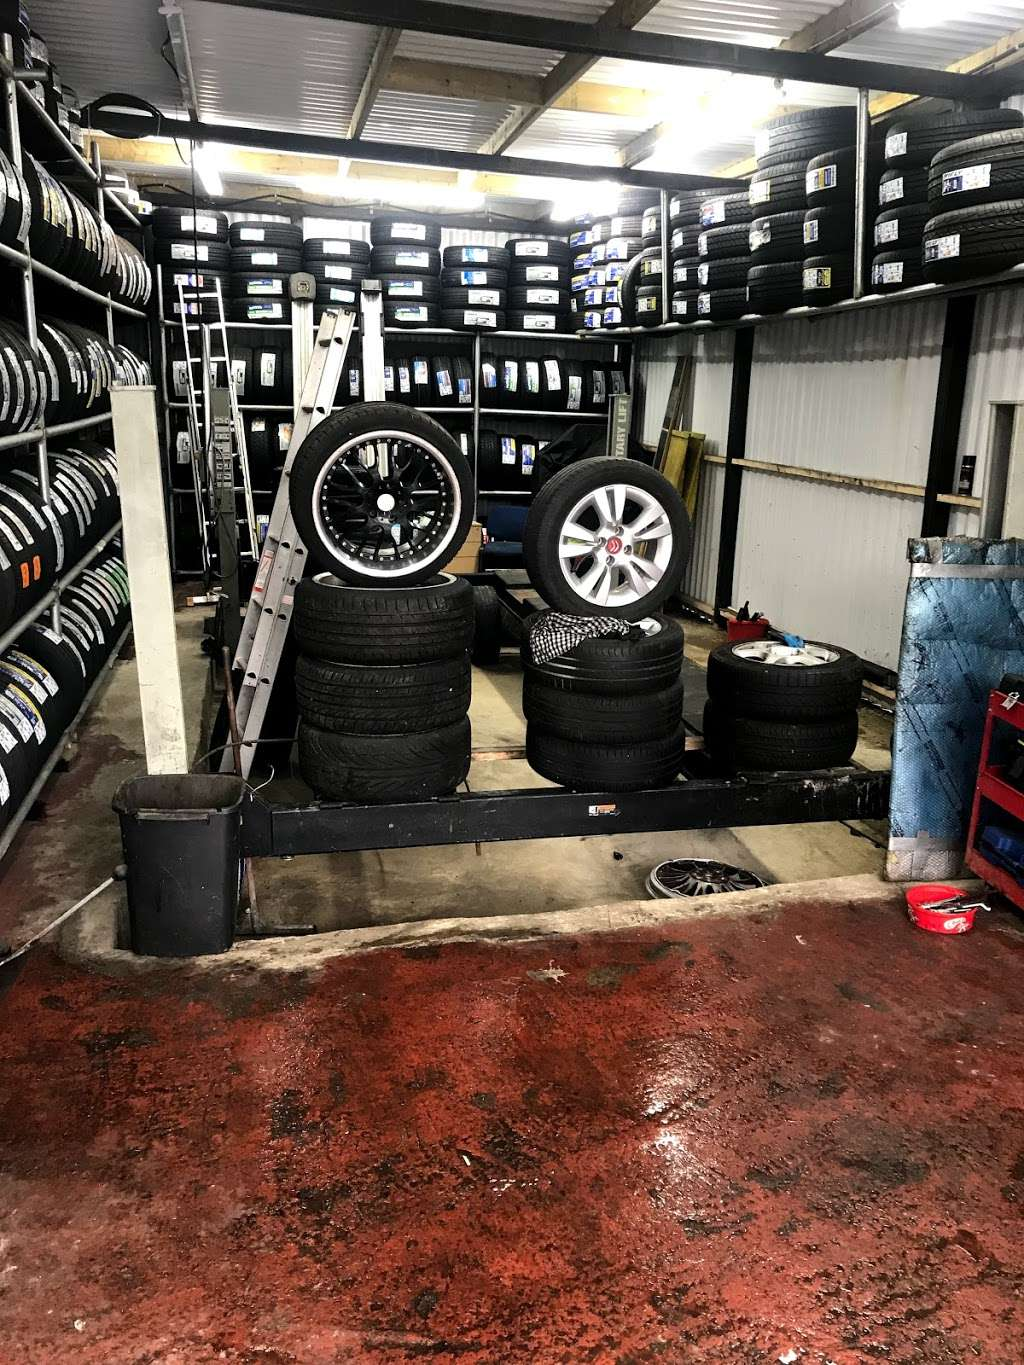 Quick Tyre & Car services - car repair  | Photo 10 of 10 | Address: Craven Park, Harlesden, London NW10 8SQ, UK | Phone: 07427 679906